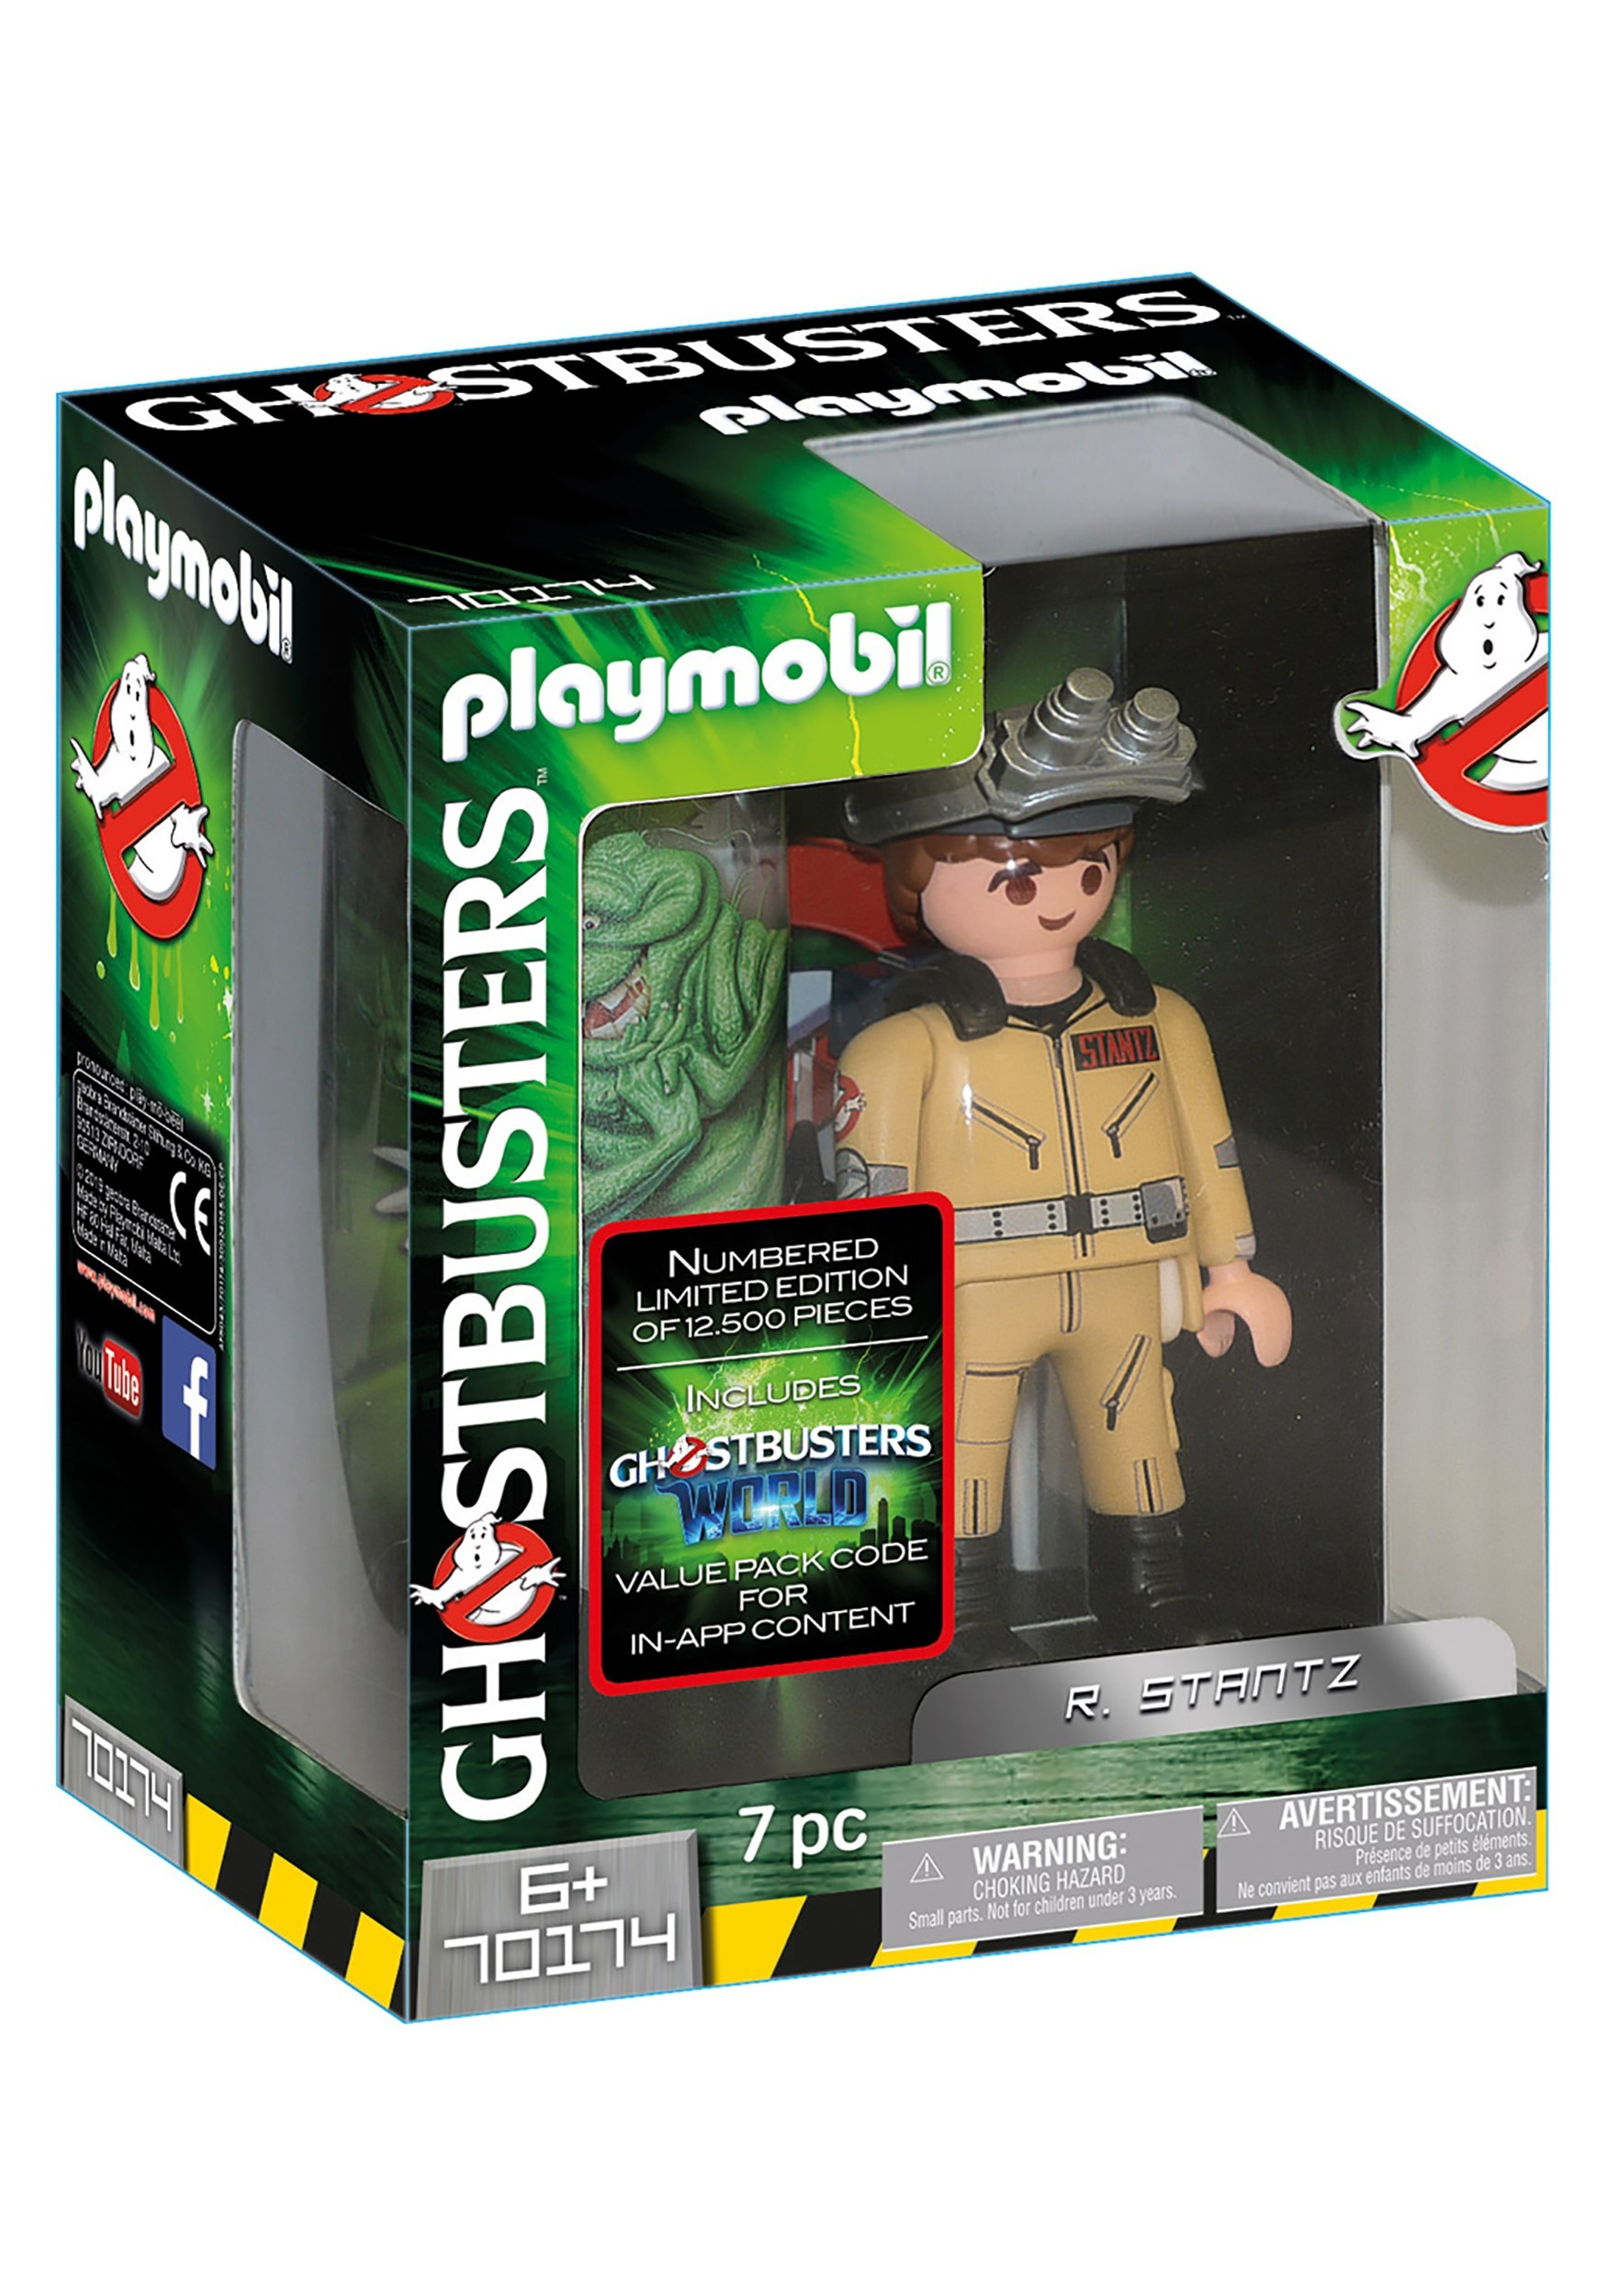 Ghostbusters Playmobil Collector's Edition R. Stantz